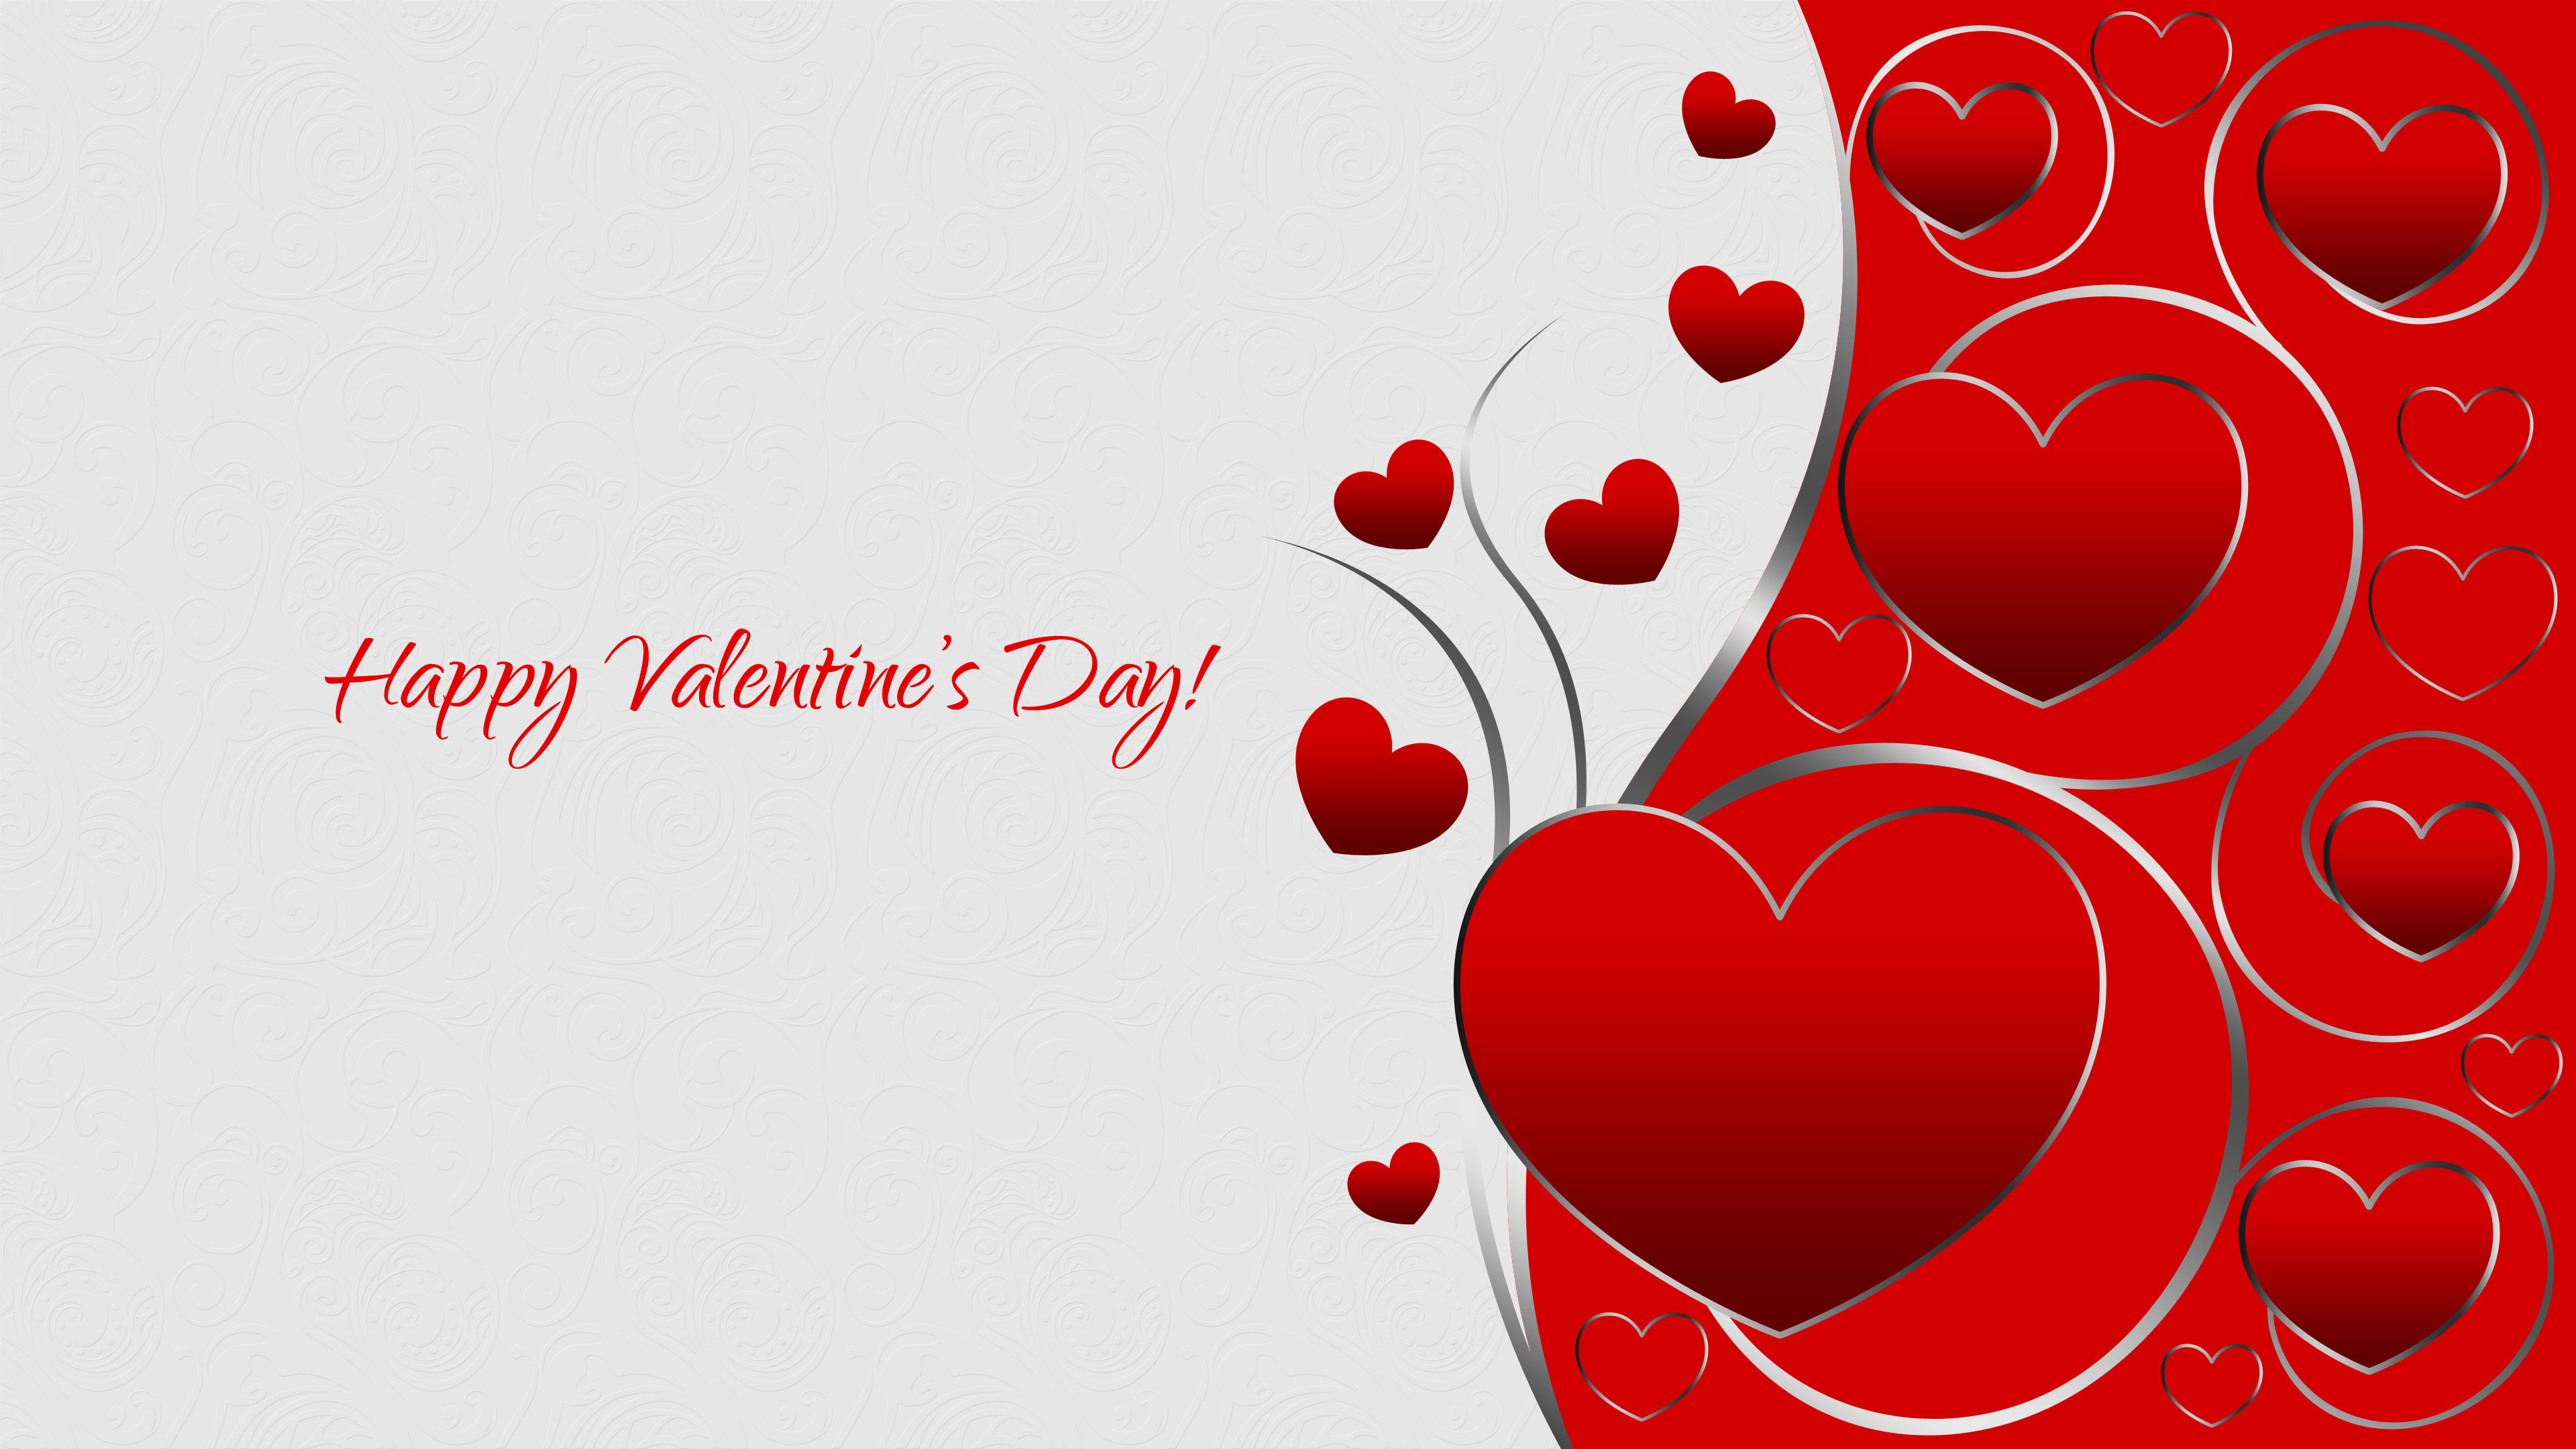 valentine 39 s day wallpapers images photos pictures backgrounds. Black Bedroom Furniture Sets. Home Design Ideas